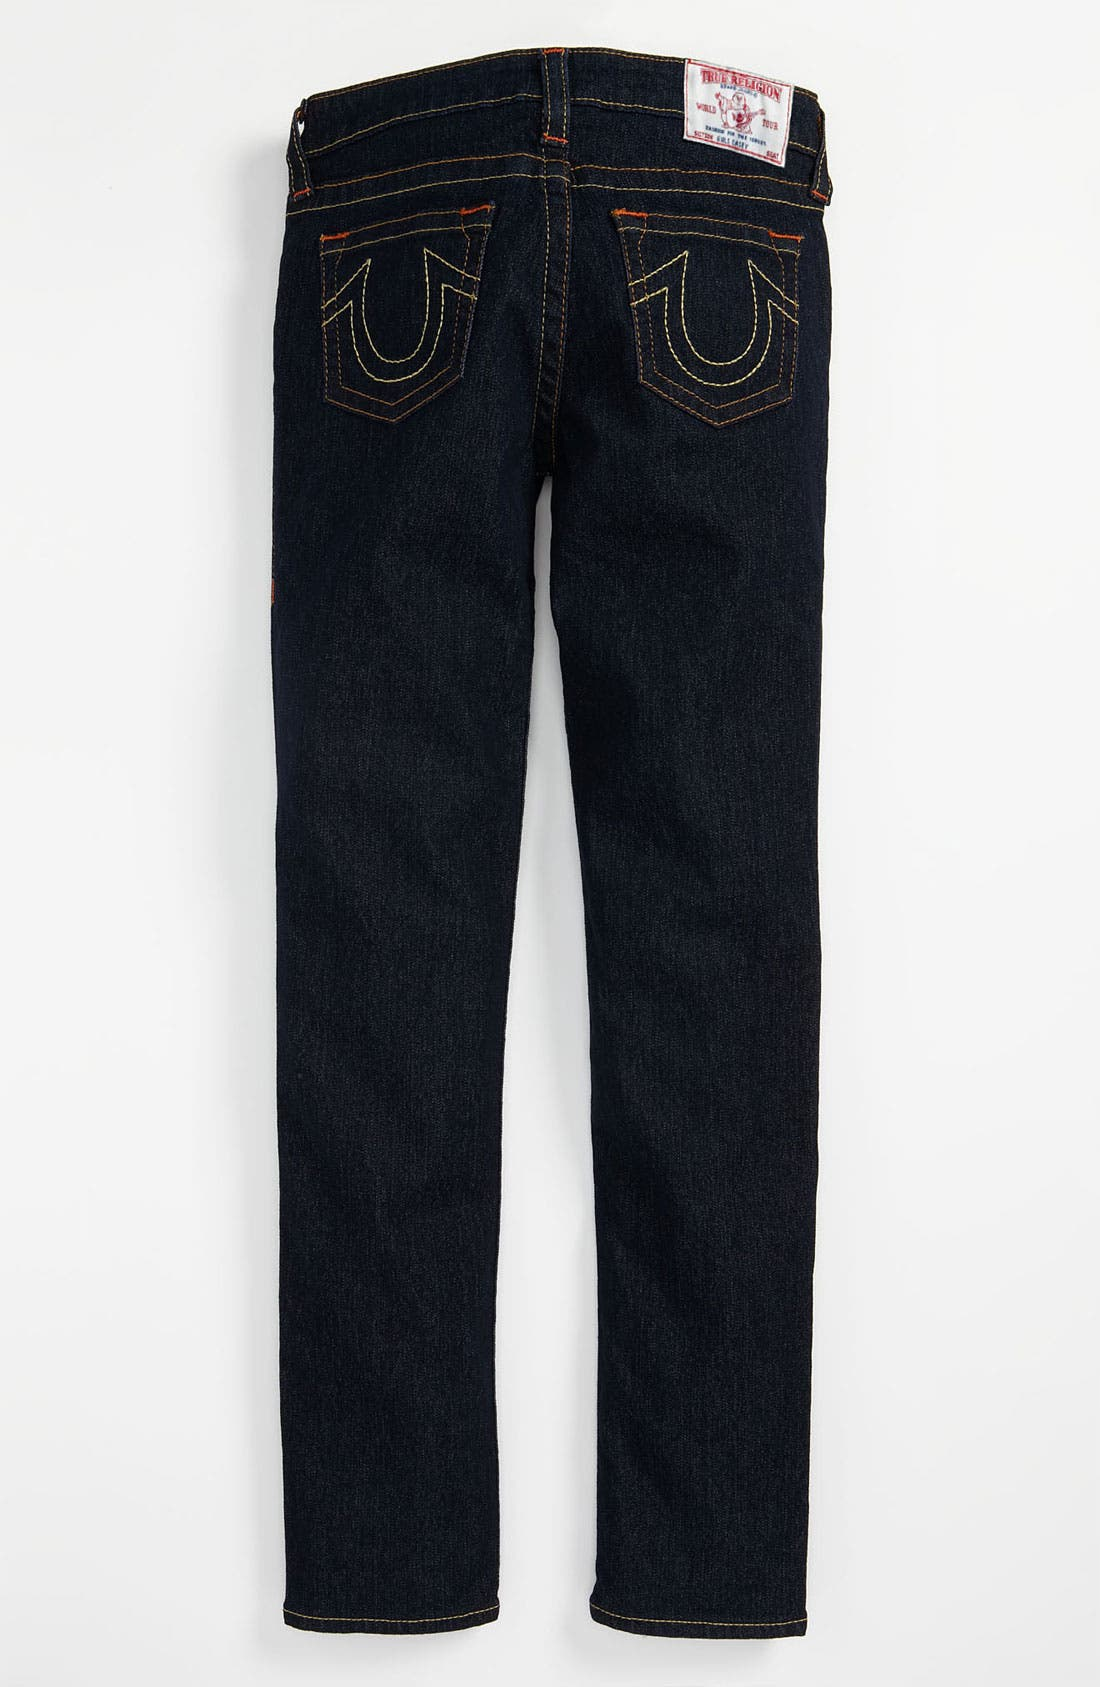 Alternate Image 1 Selected - True Religion Brand Jeans 'Casey' Denim Leggings (Big Girls)